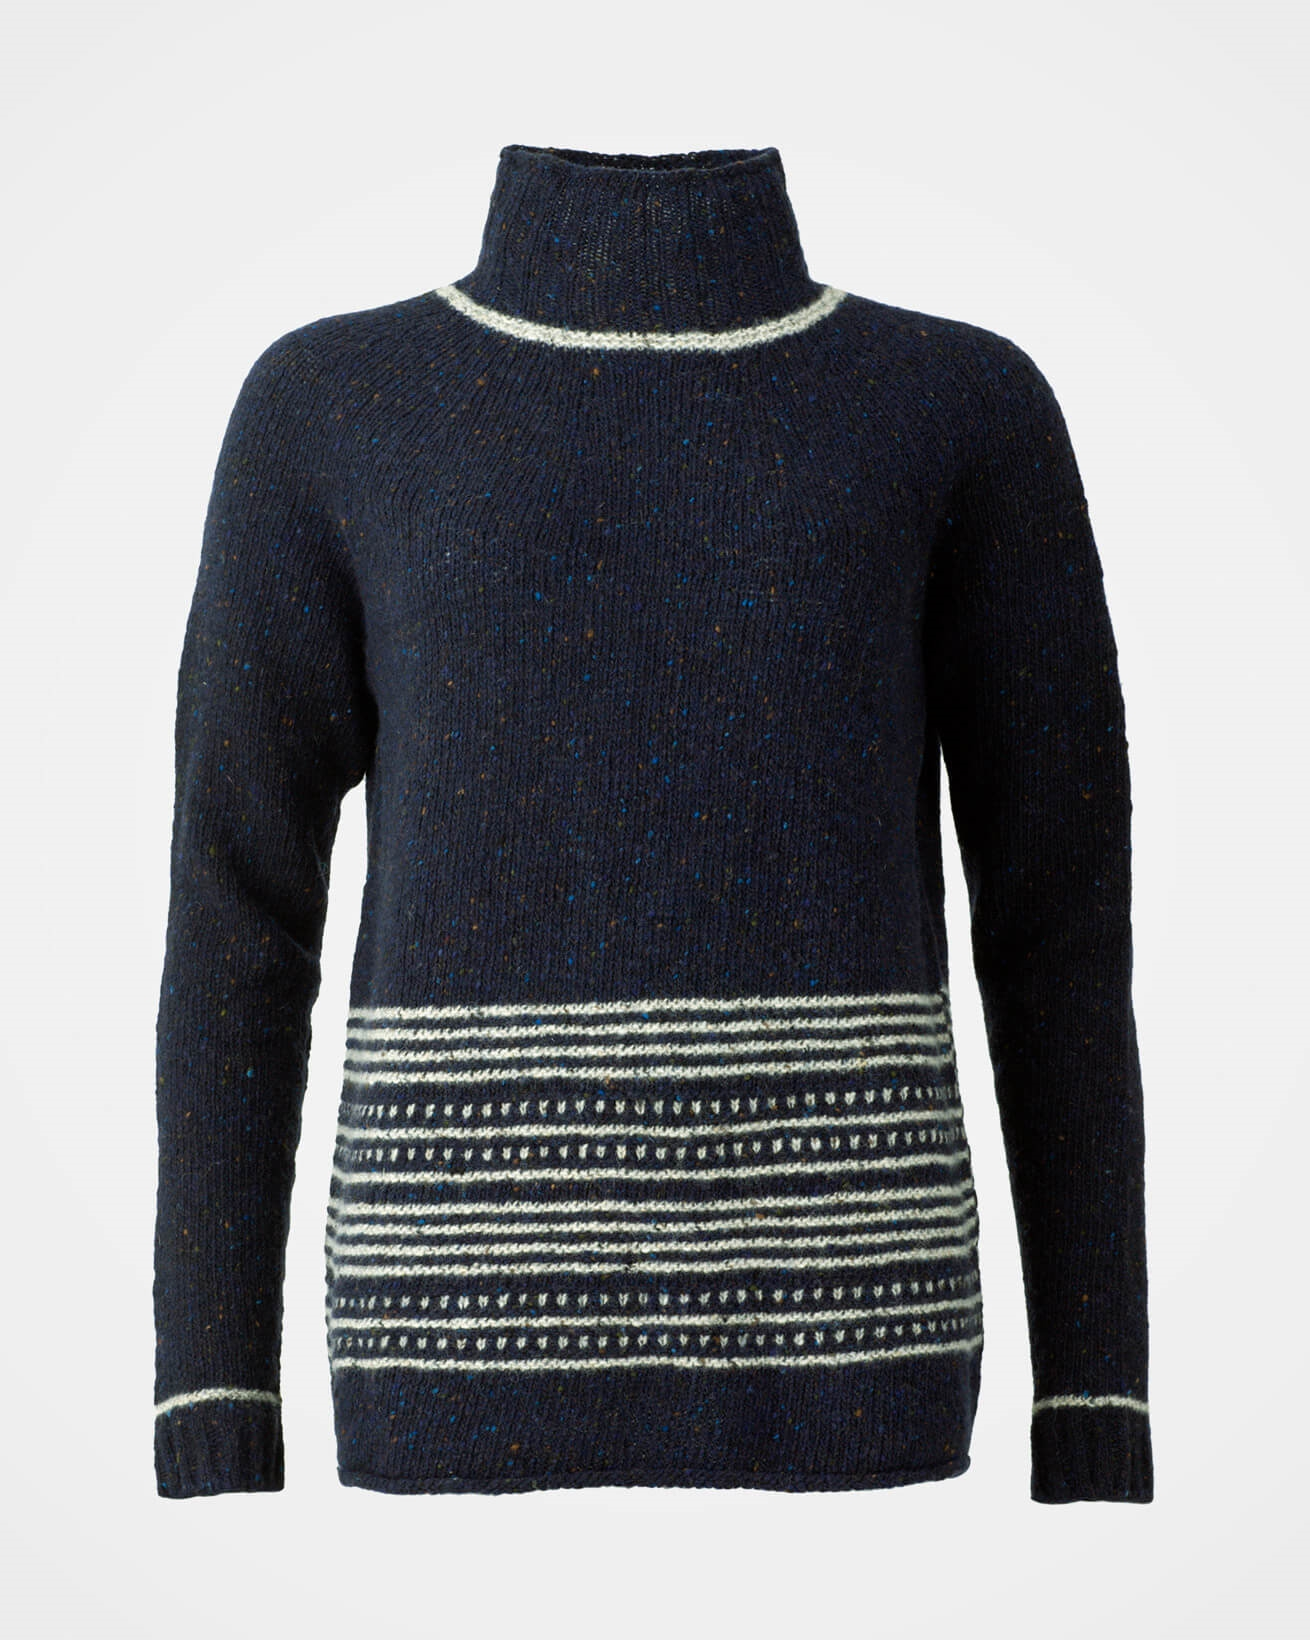 Flecked Funnel Neck - Small - Navy - 1182